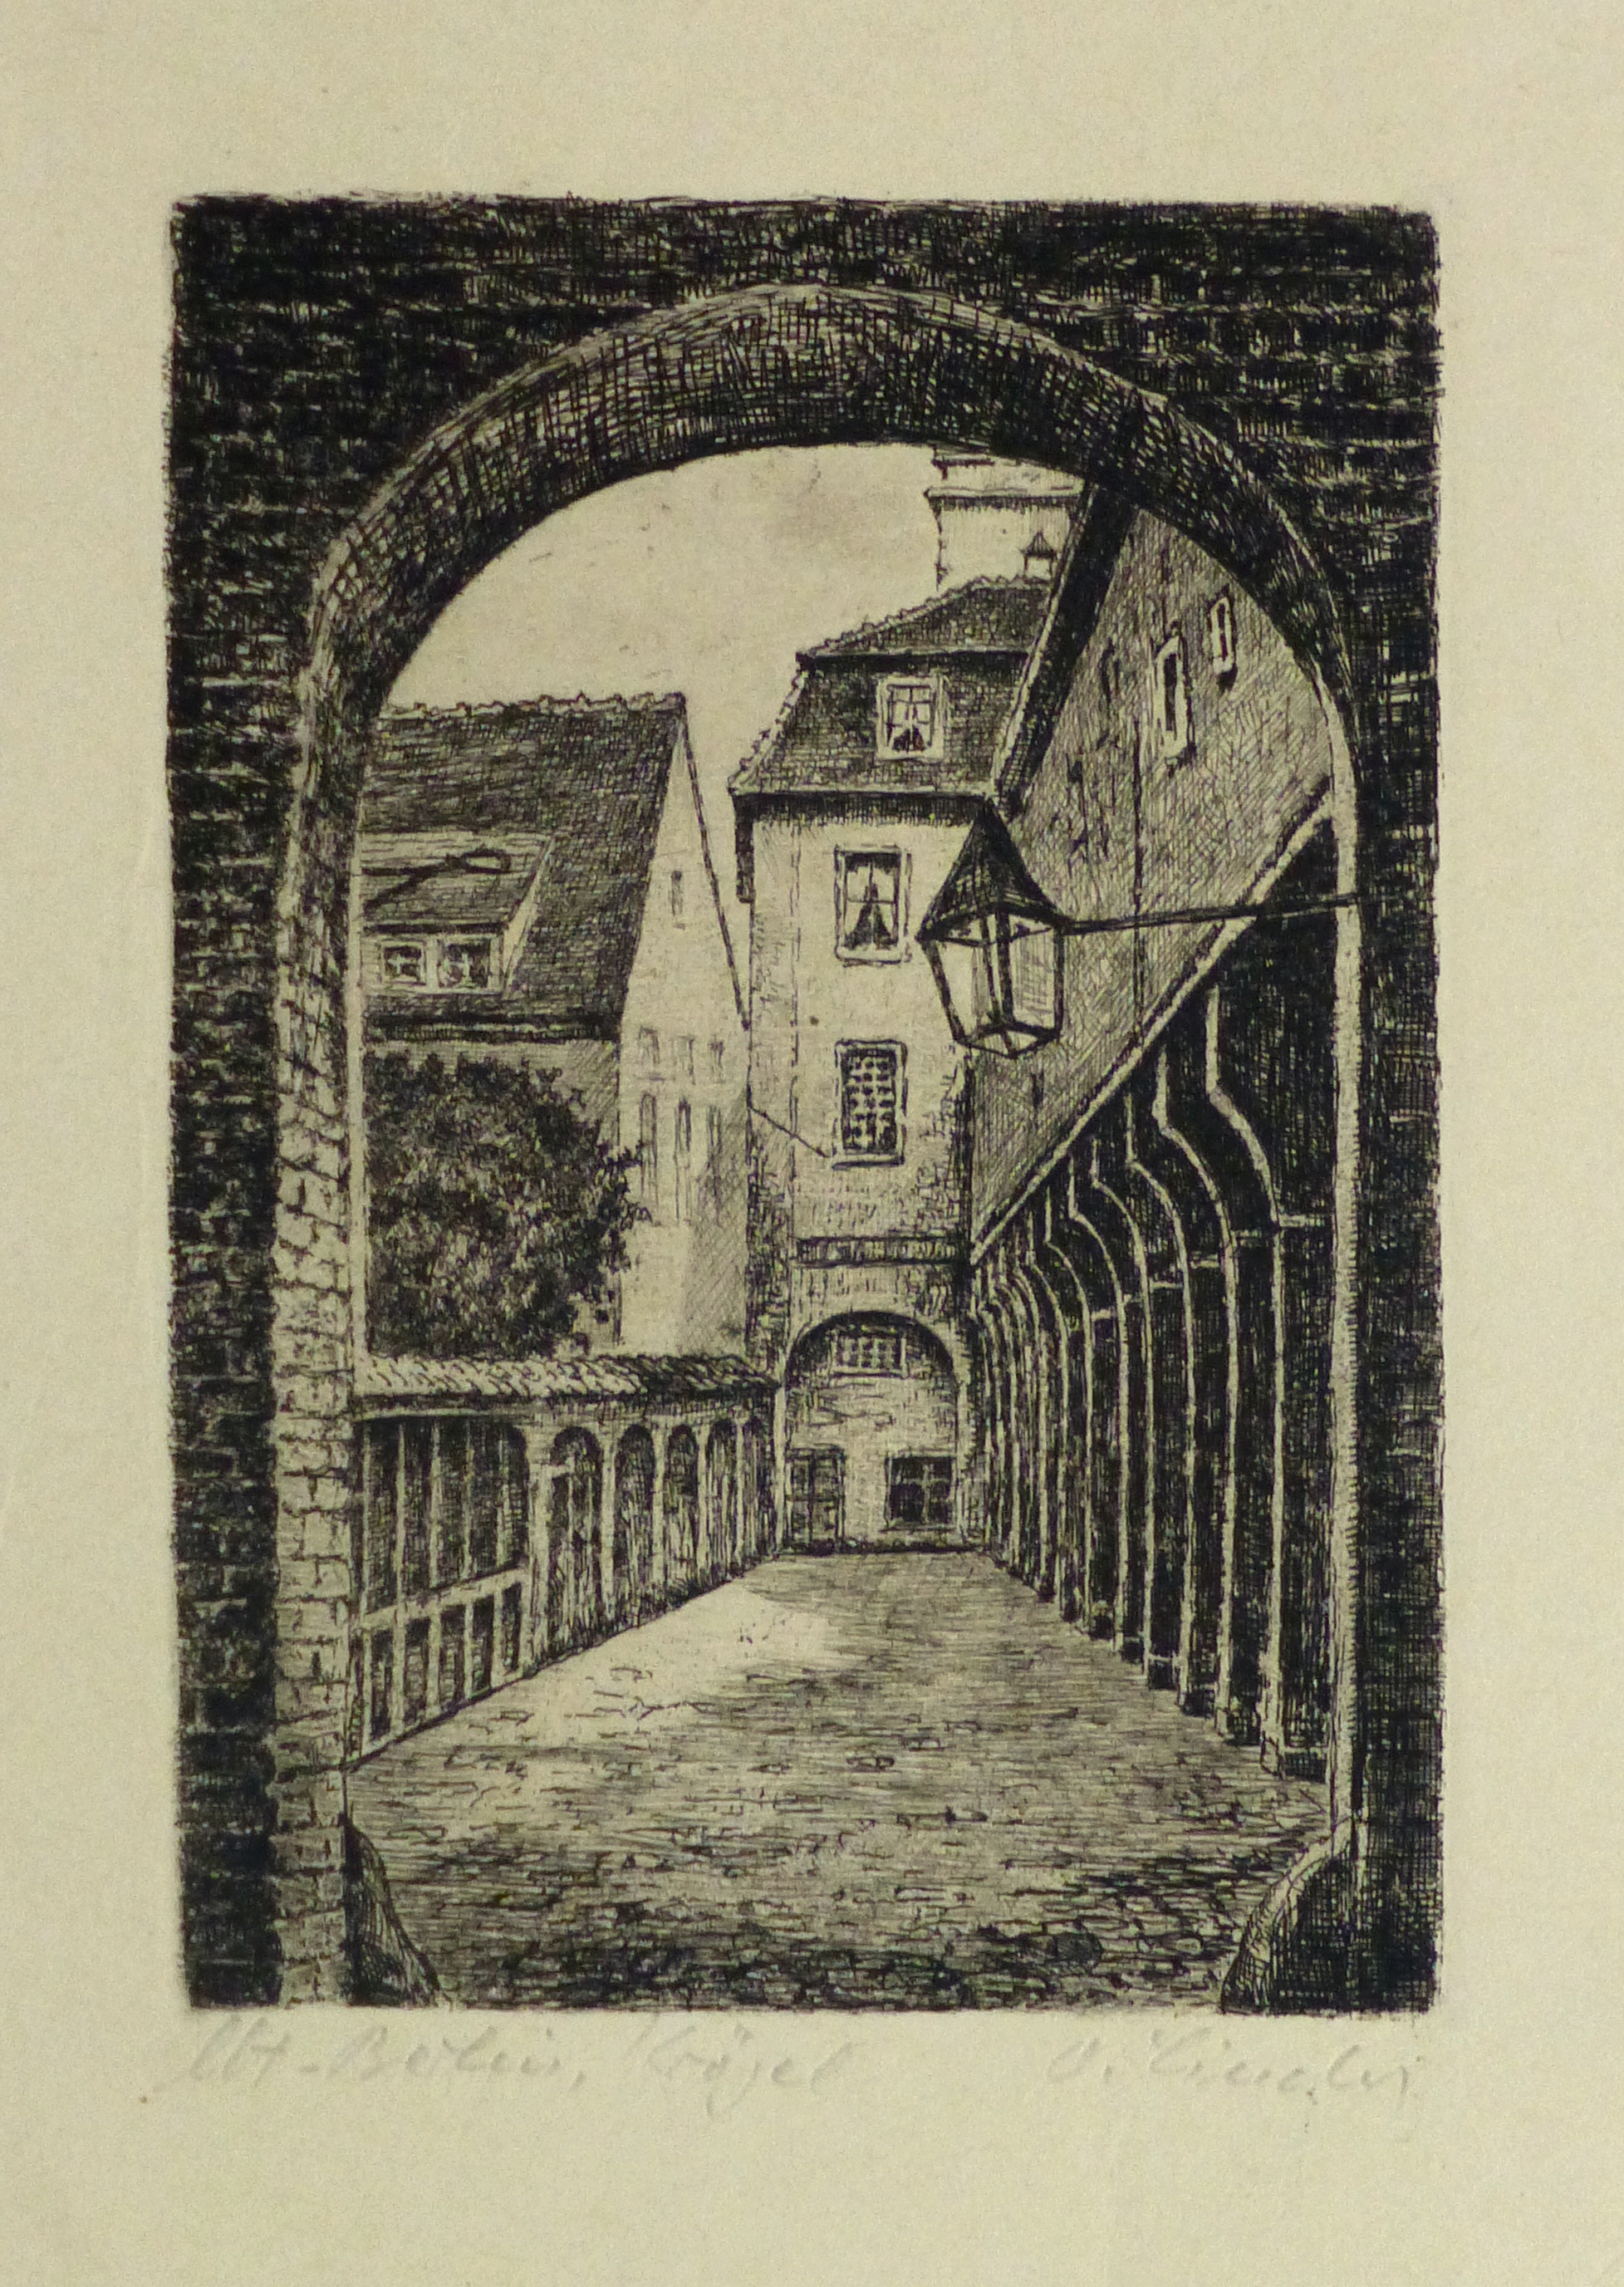 tching - The Alley, Circa 1930-main-10751M